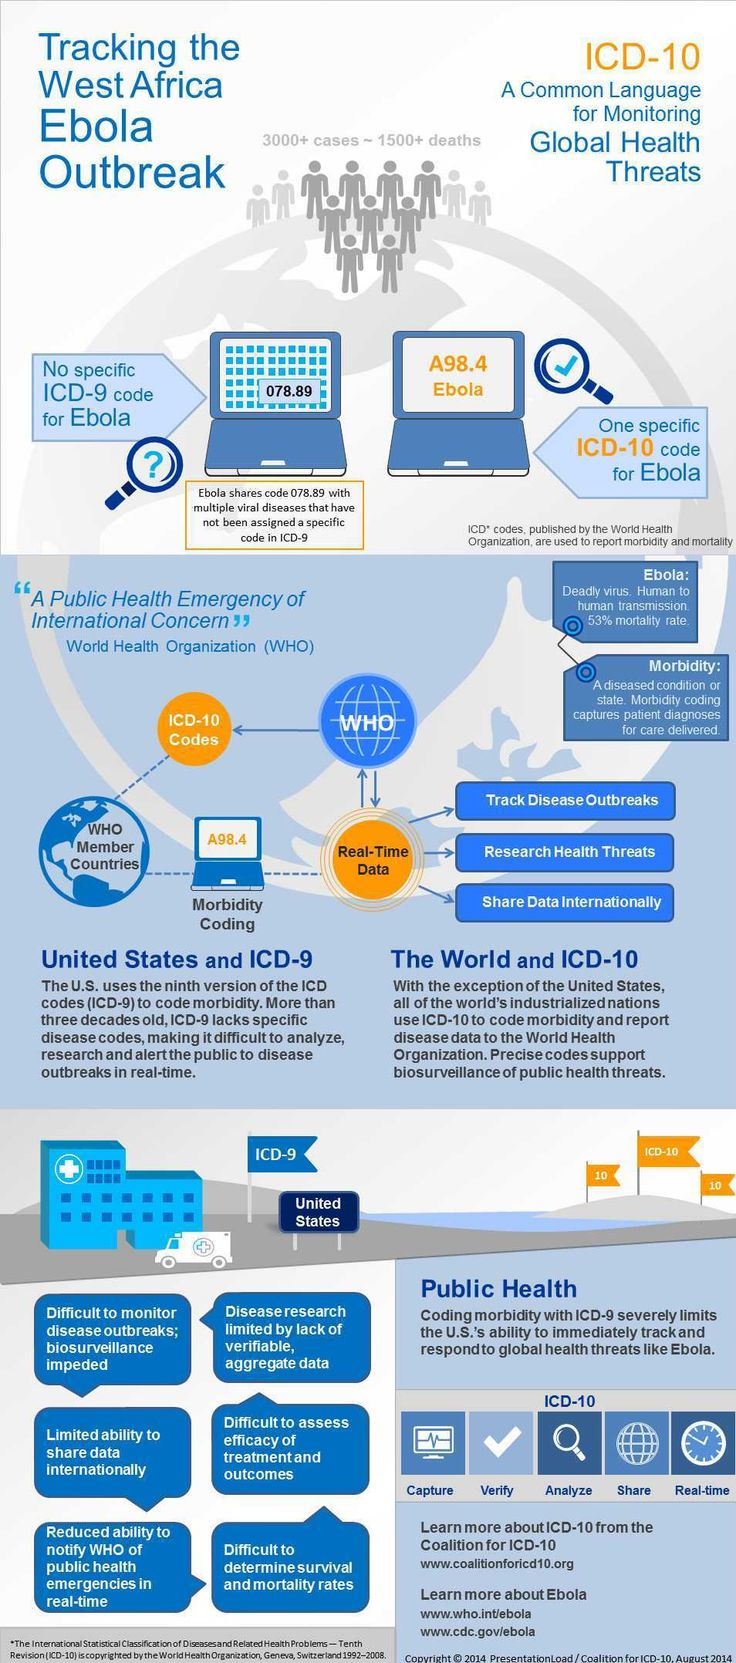 100 tips for icd 10 pcs coding - Infographic Icd 10 Can Help Track The Ebola Outbreak